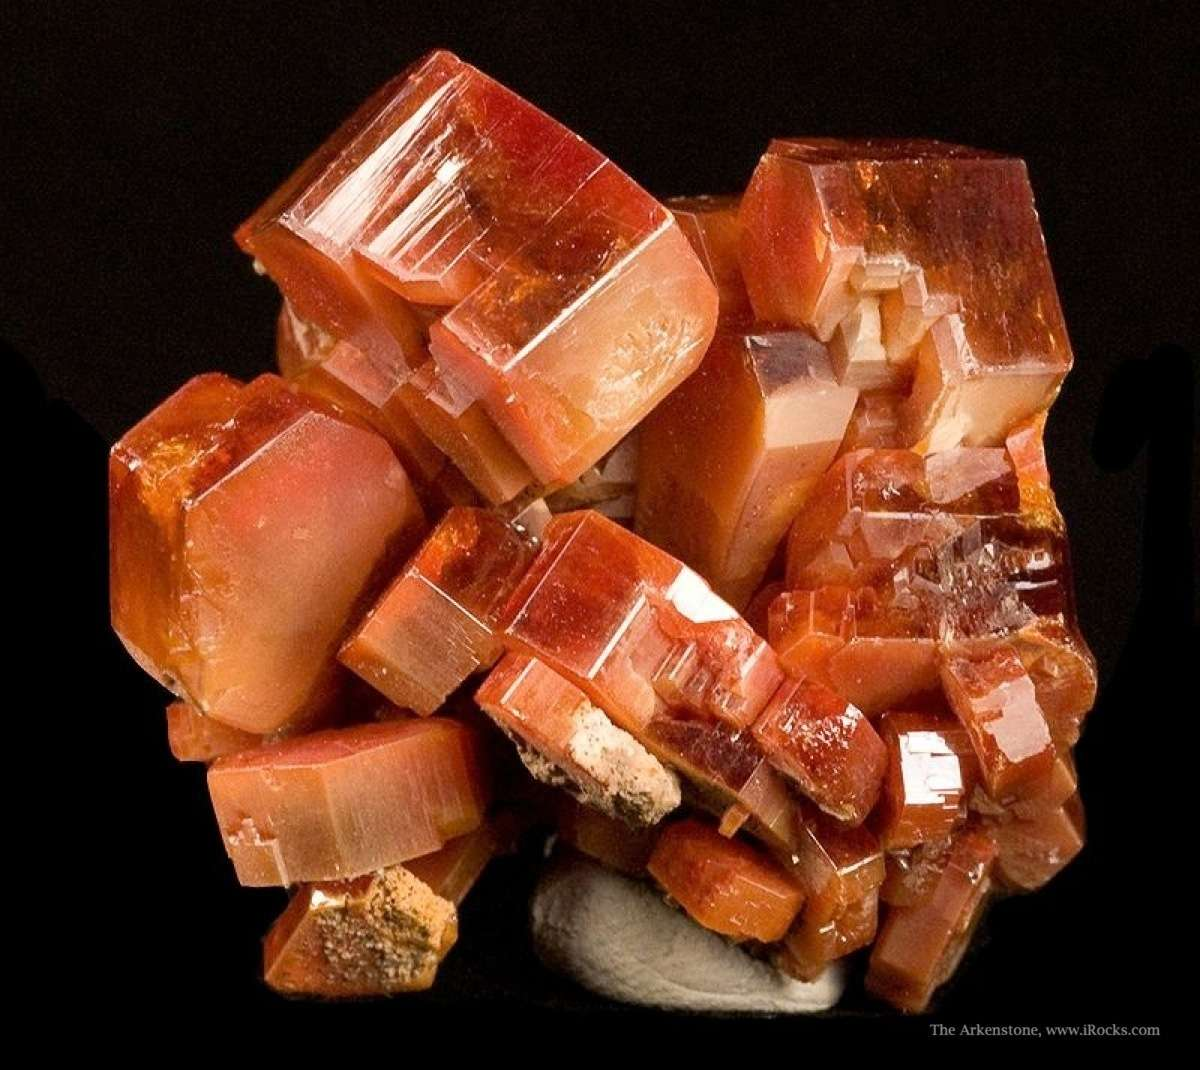 From 2009 noted thick robust crystals fine aesthetic specimen crystals